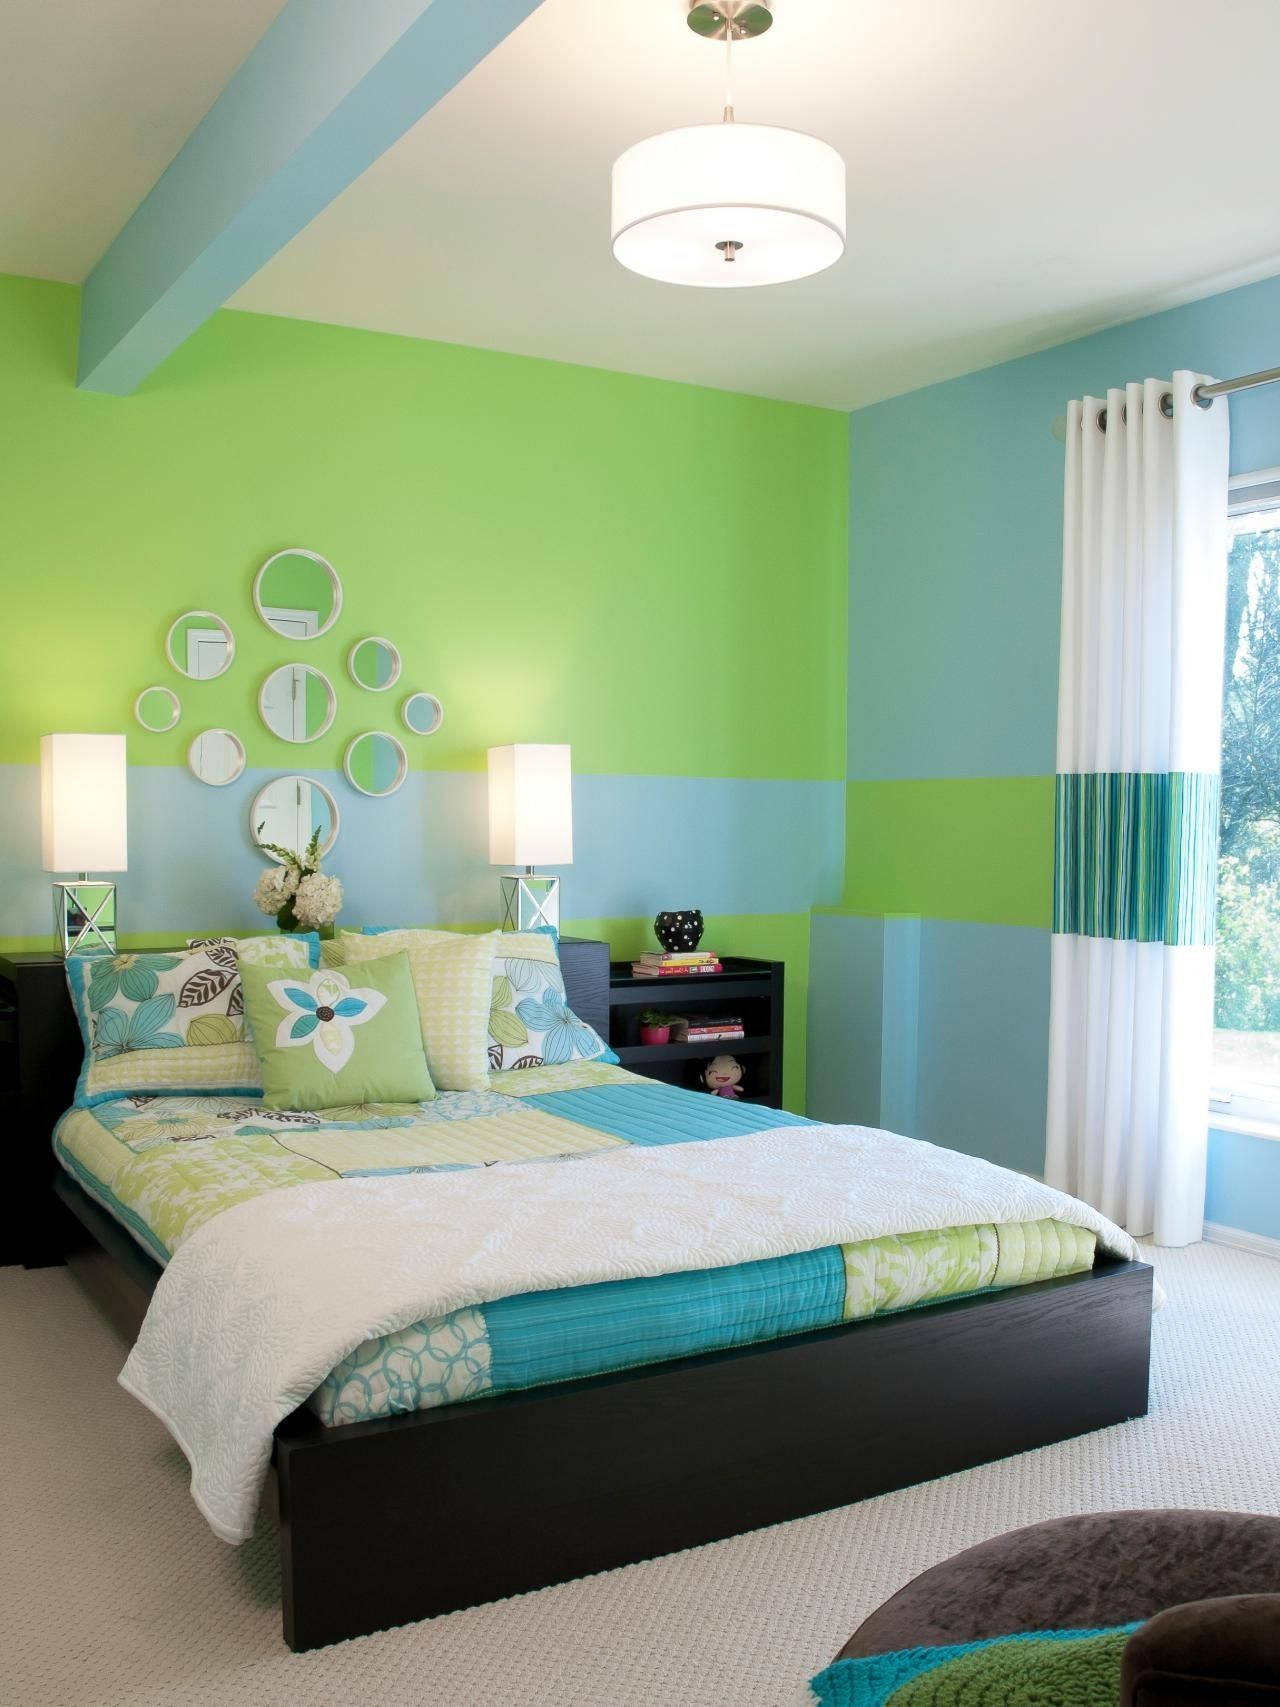 Cute Girl Bedroom Ideas Your Daughter Will Love A Room Filled With Color Patterns And Cute Green Bedroom Decor Girls Bedroom Colors Interior Design Bedroom